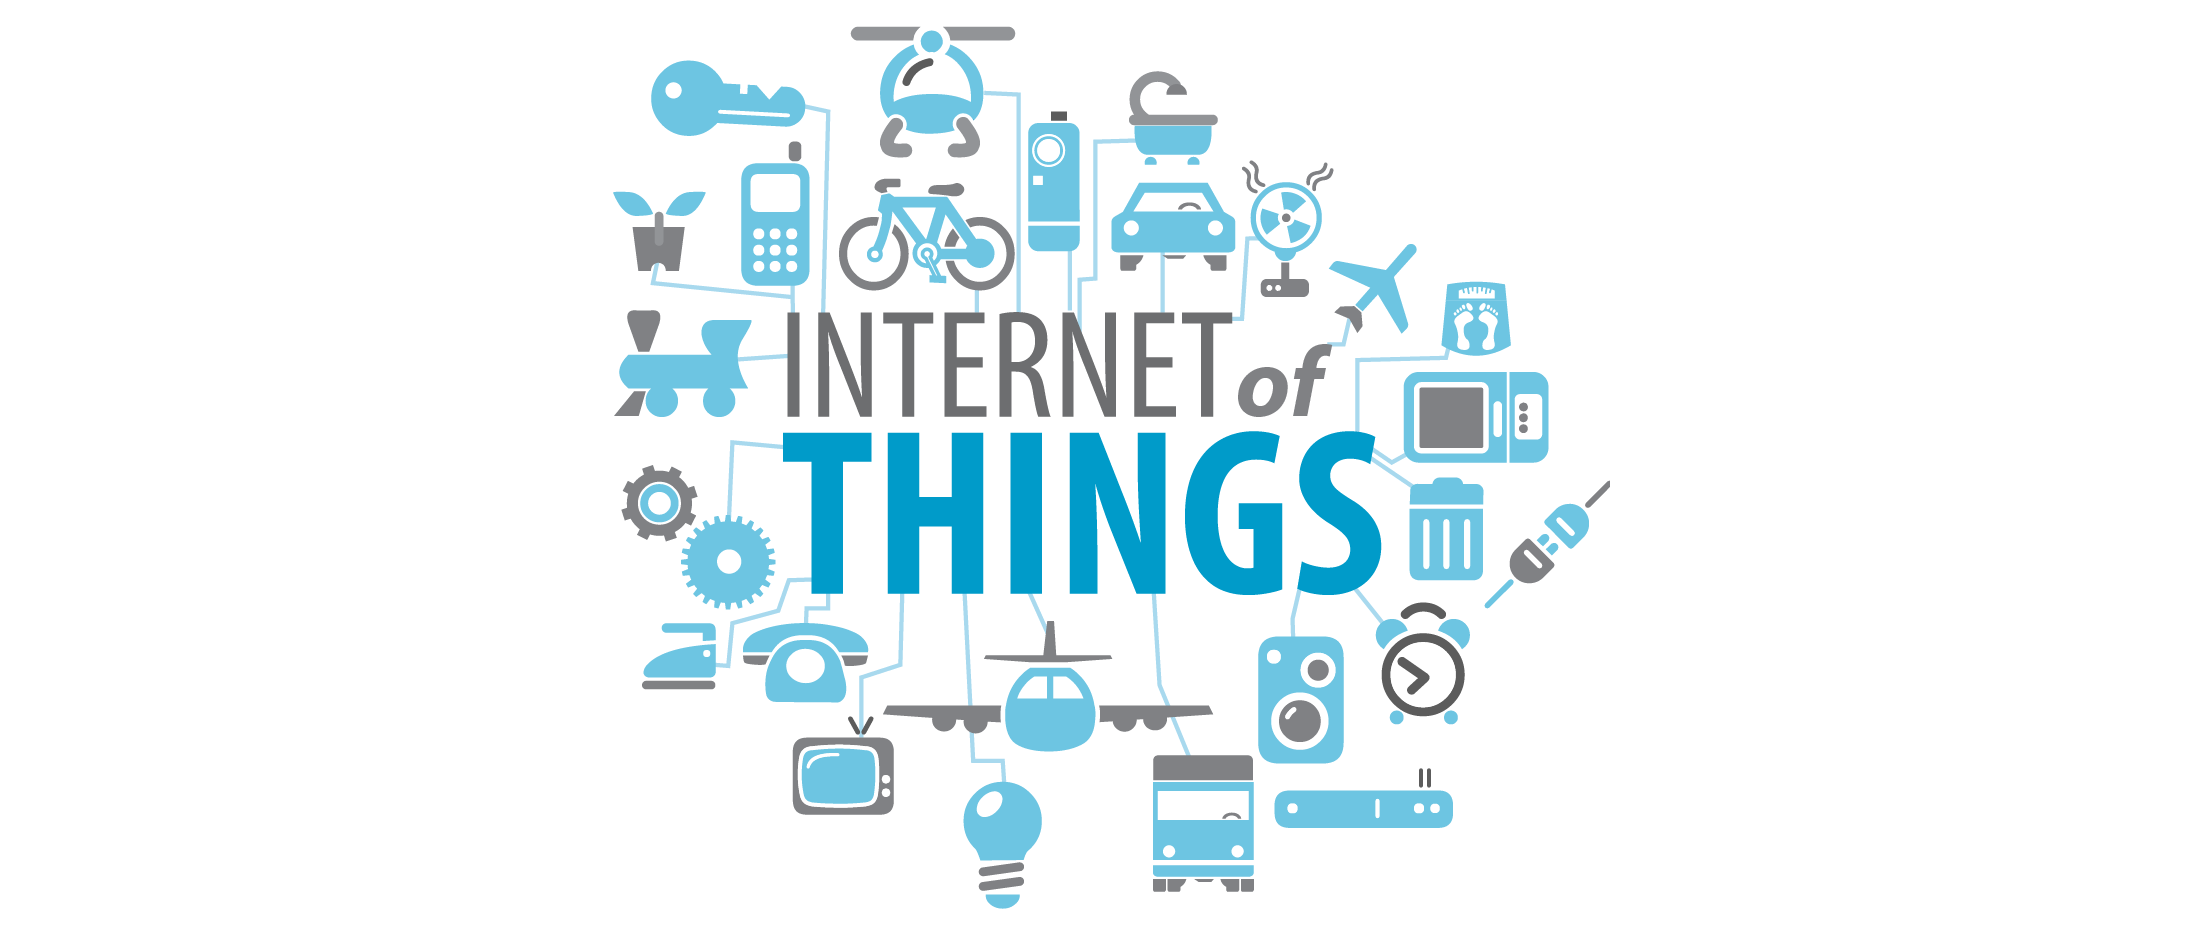 Customer service in the era of the Internet of Things